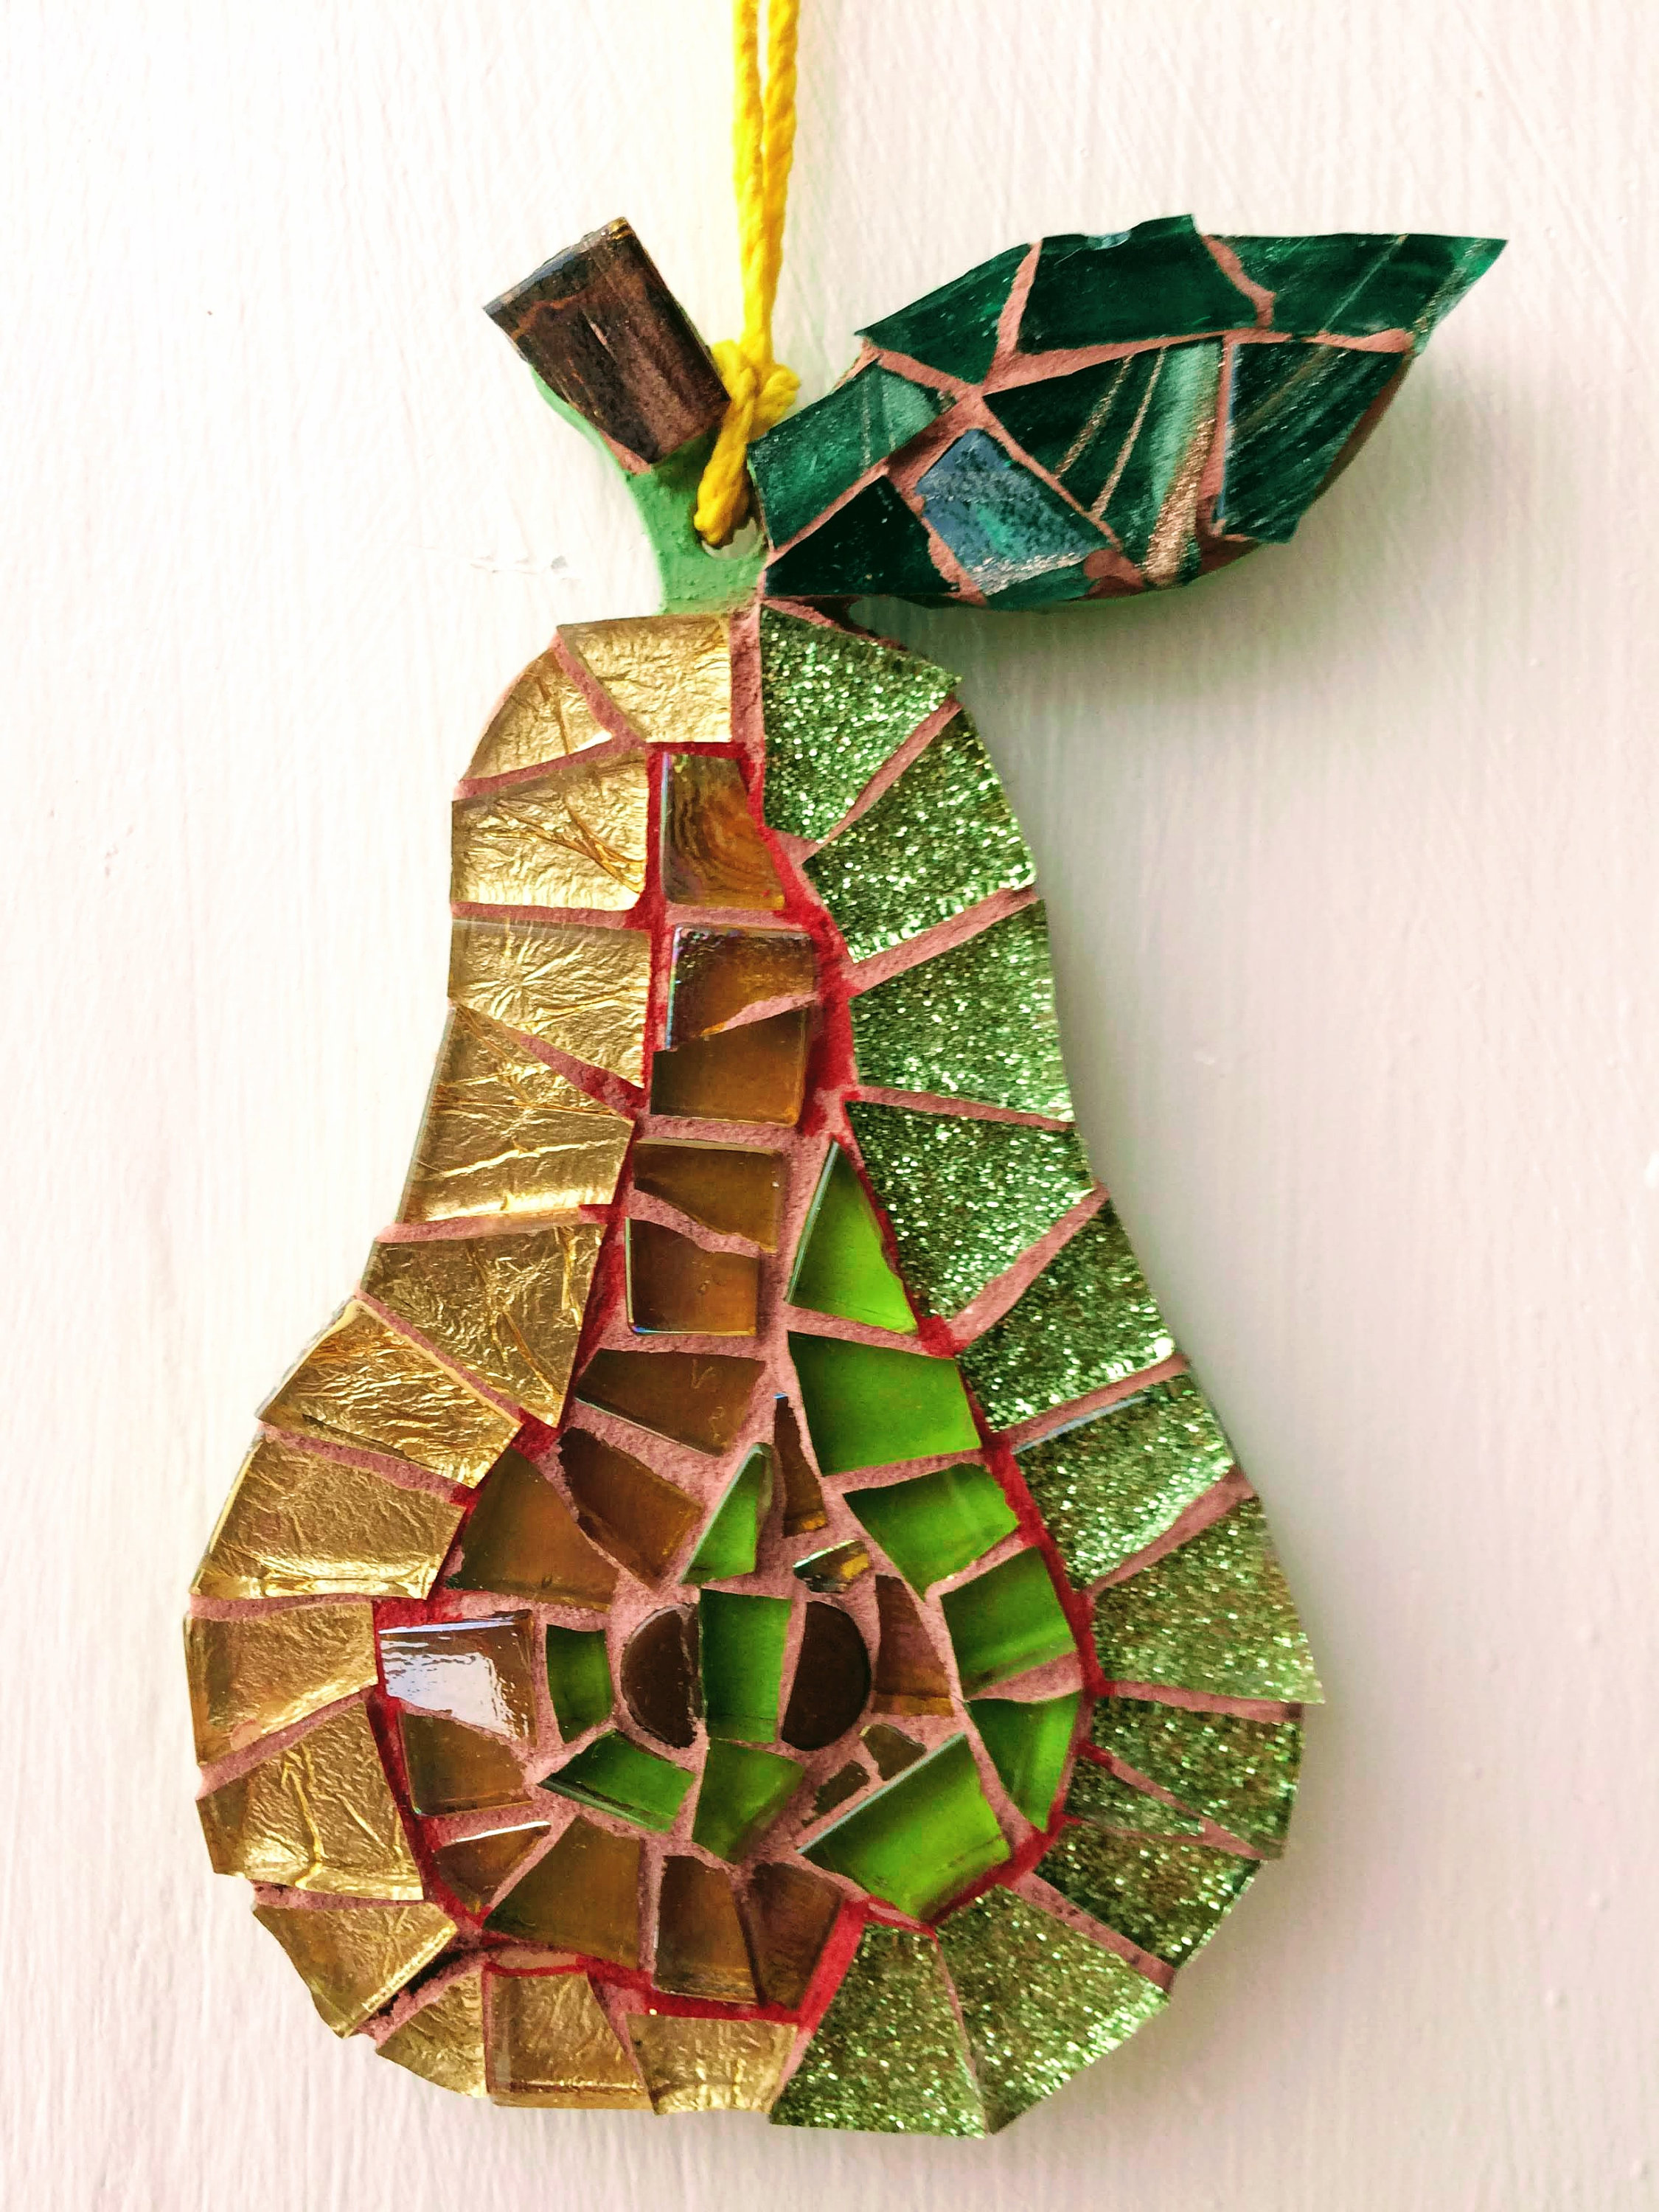 Handmade glass mosaic hanging green red gold pear Unique gift idea Kitchen  decor Gift for her Gift for him Wall art Wall decor by ShelaghJaneMosaics